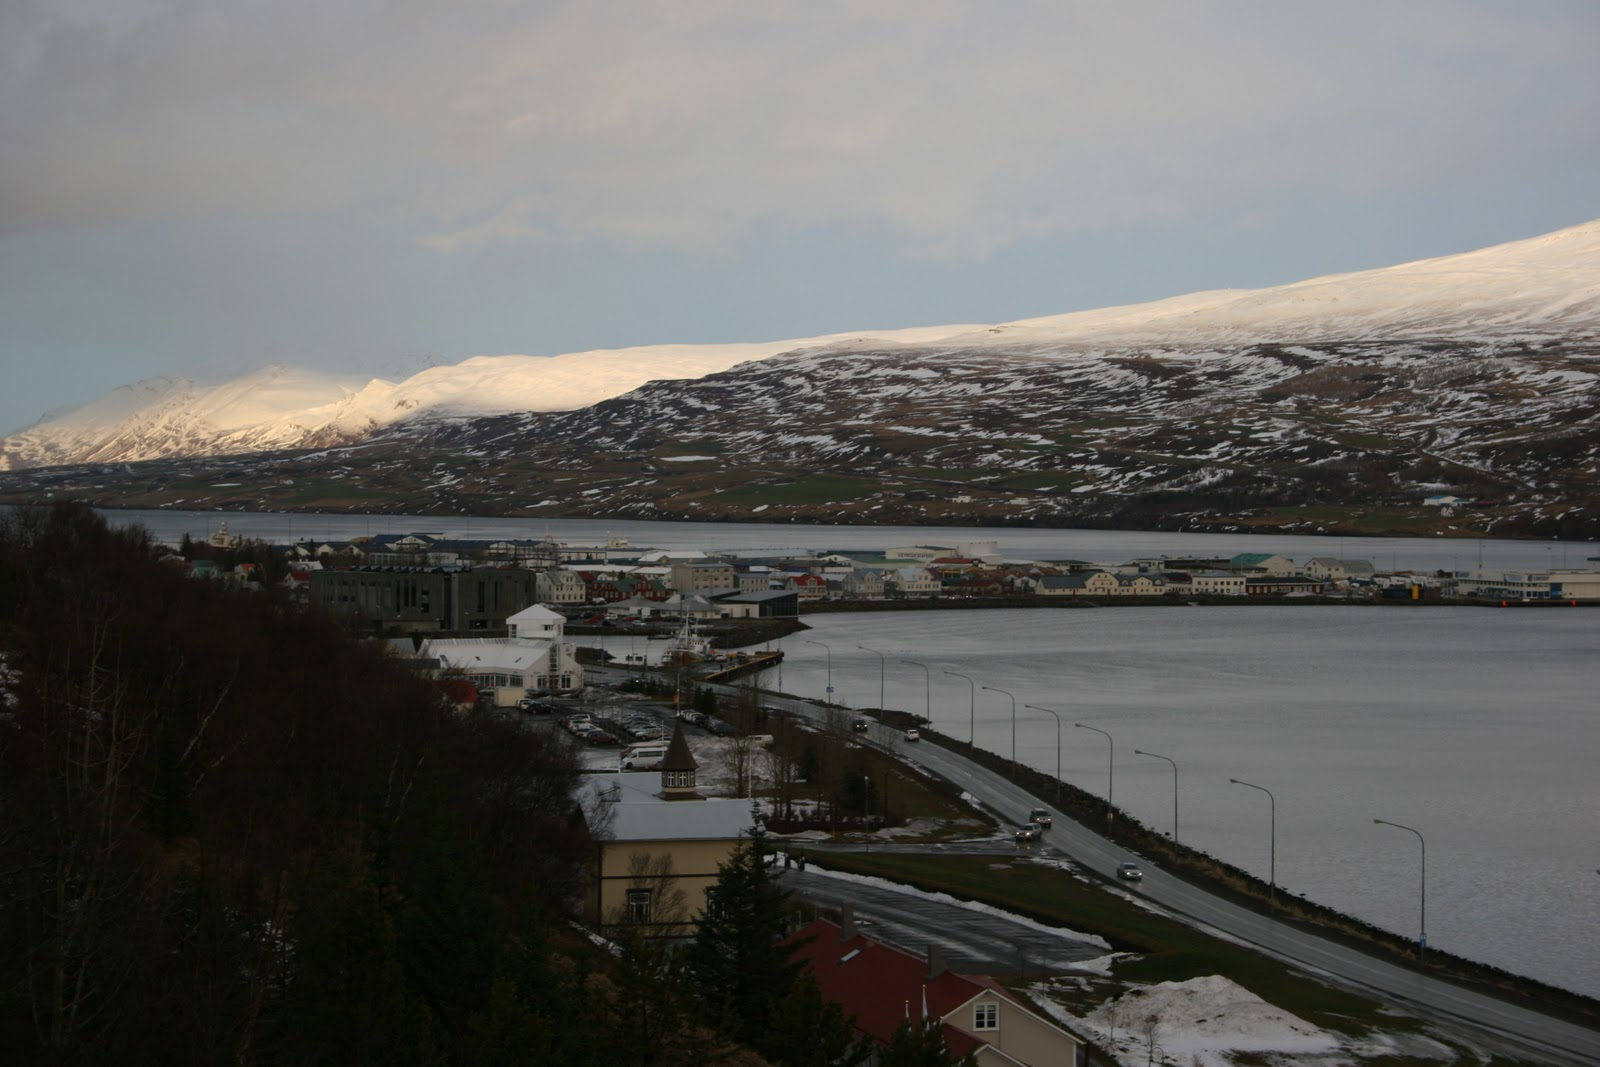 A good shot of Akureyri looking down from a part of town on top of a hill! Cute little port town!